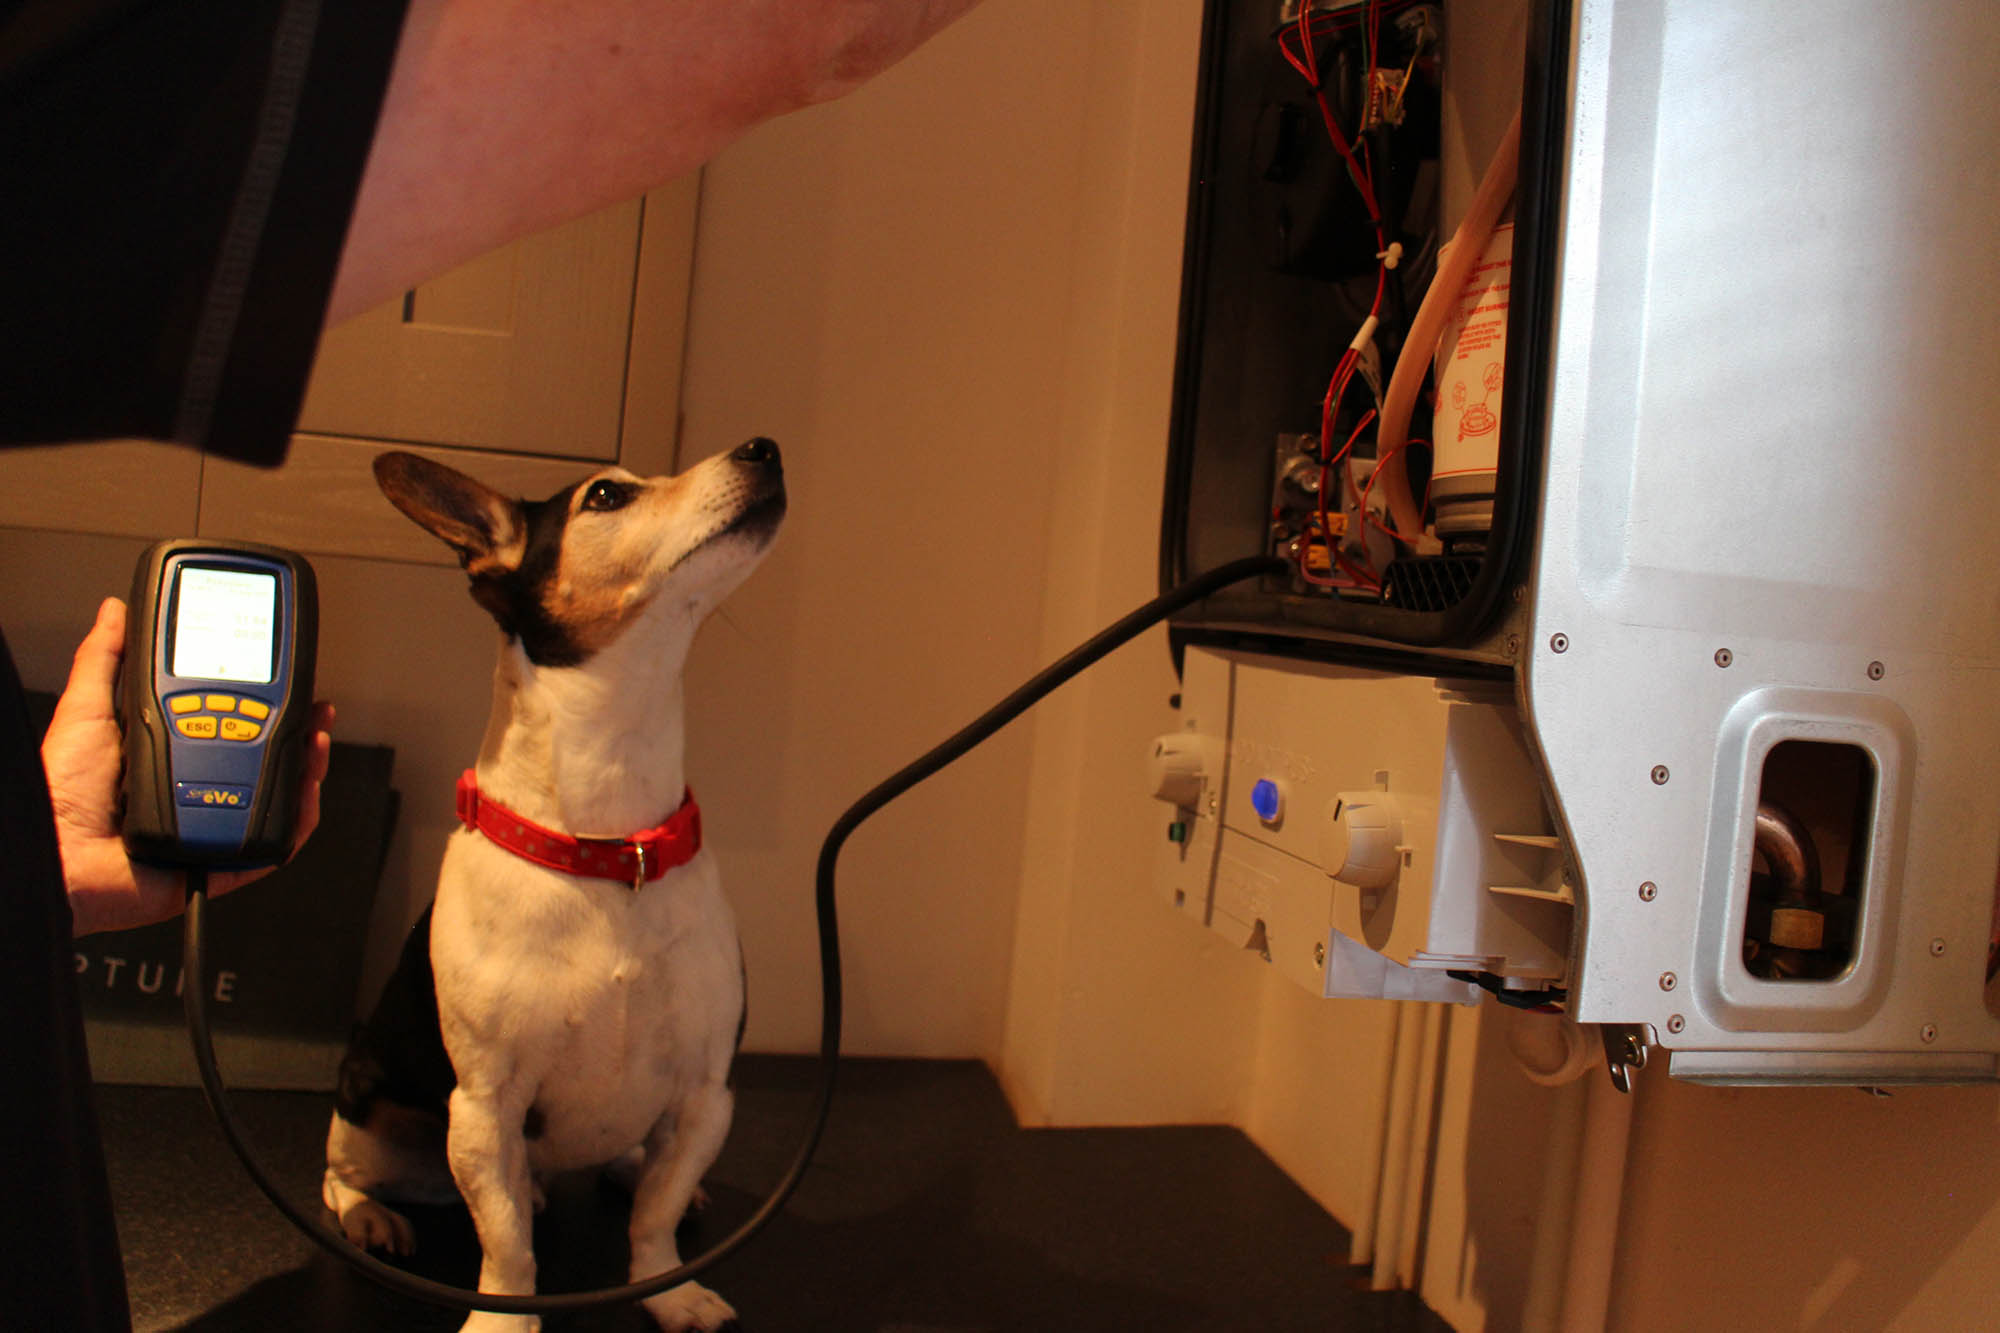 Power Plumbing in action, accompanied by Rory the Jack Russell